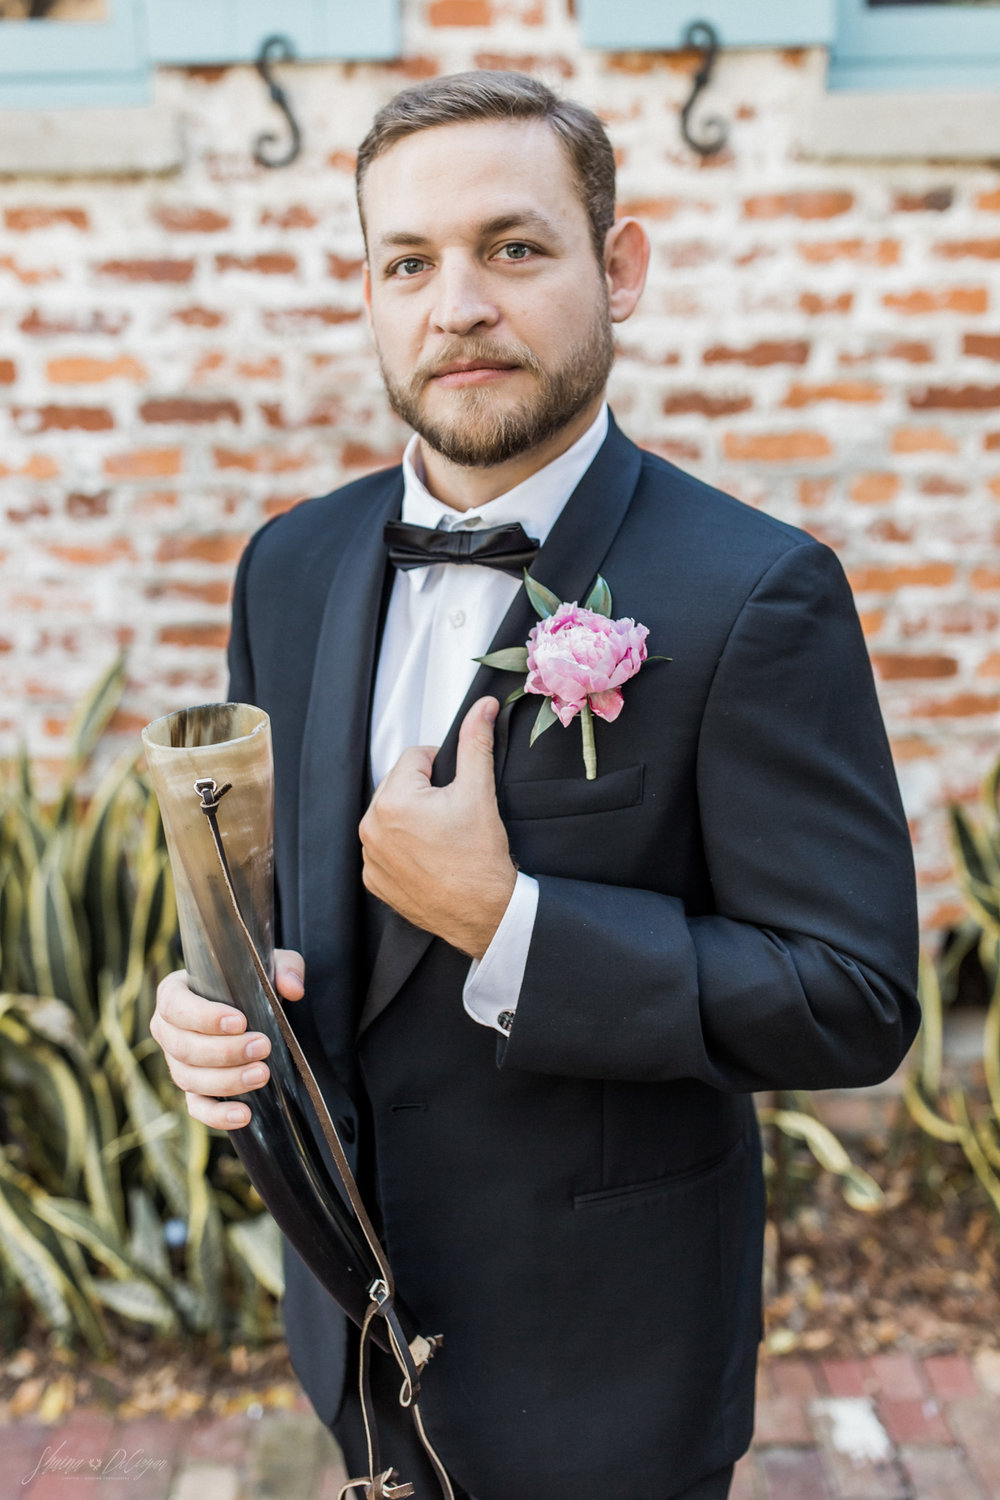 dapper groom style at his wedding at the Casa Feliz historic home in winter park